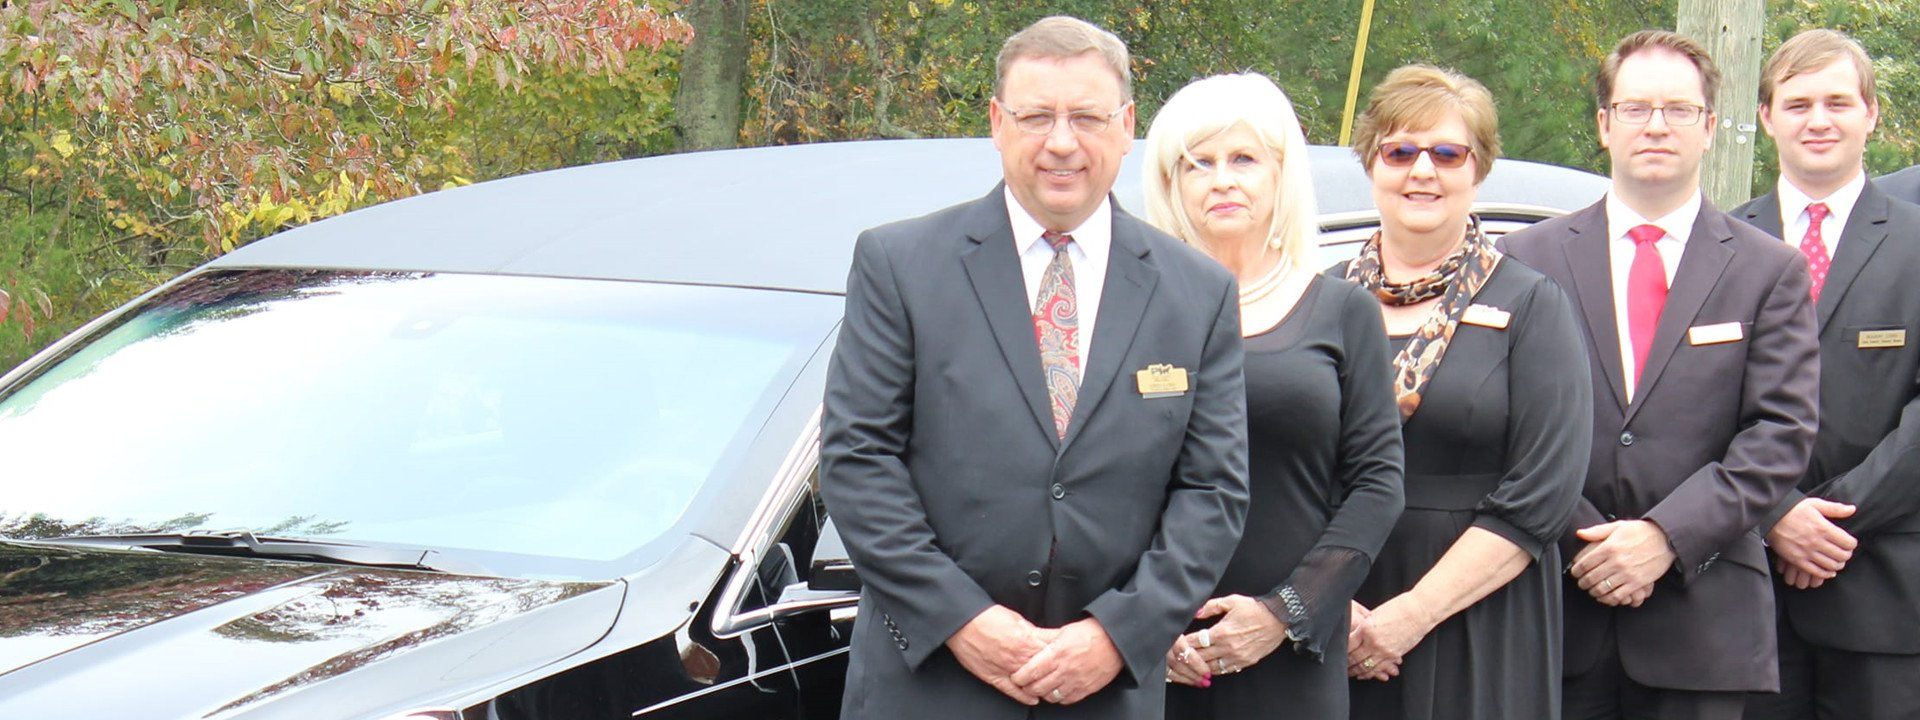 About Us | Lemley Funeral Home & Crematory